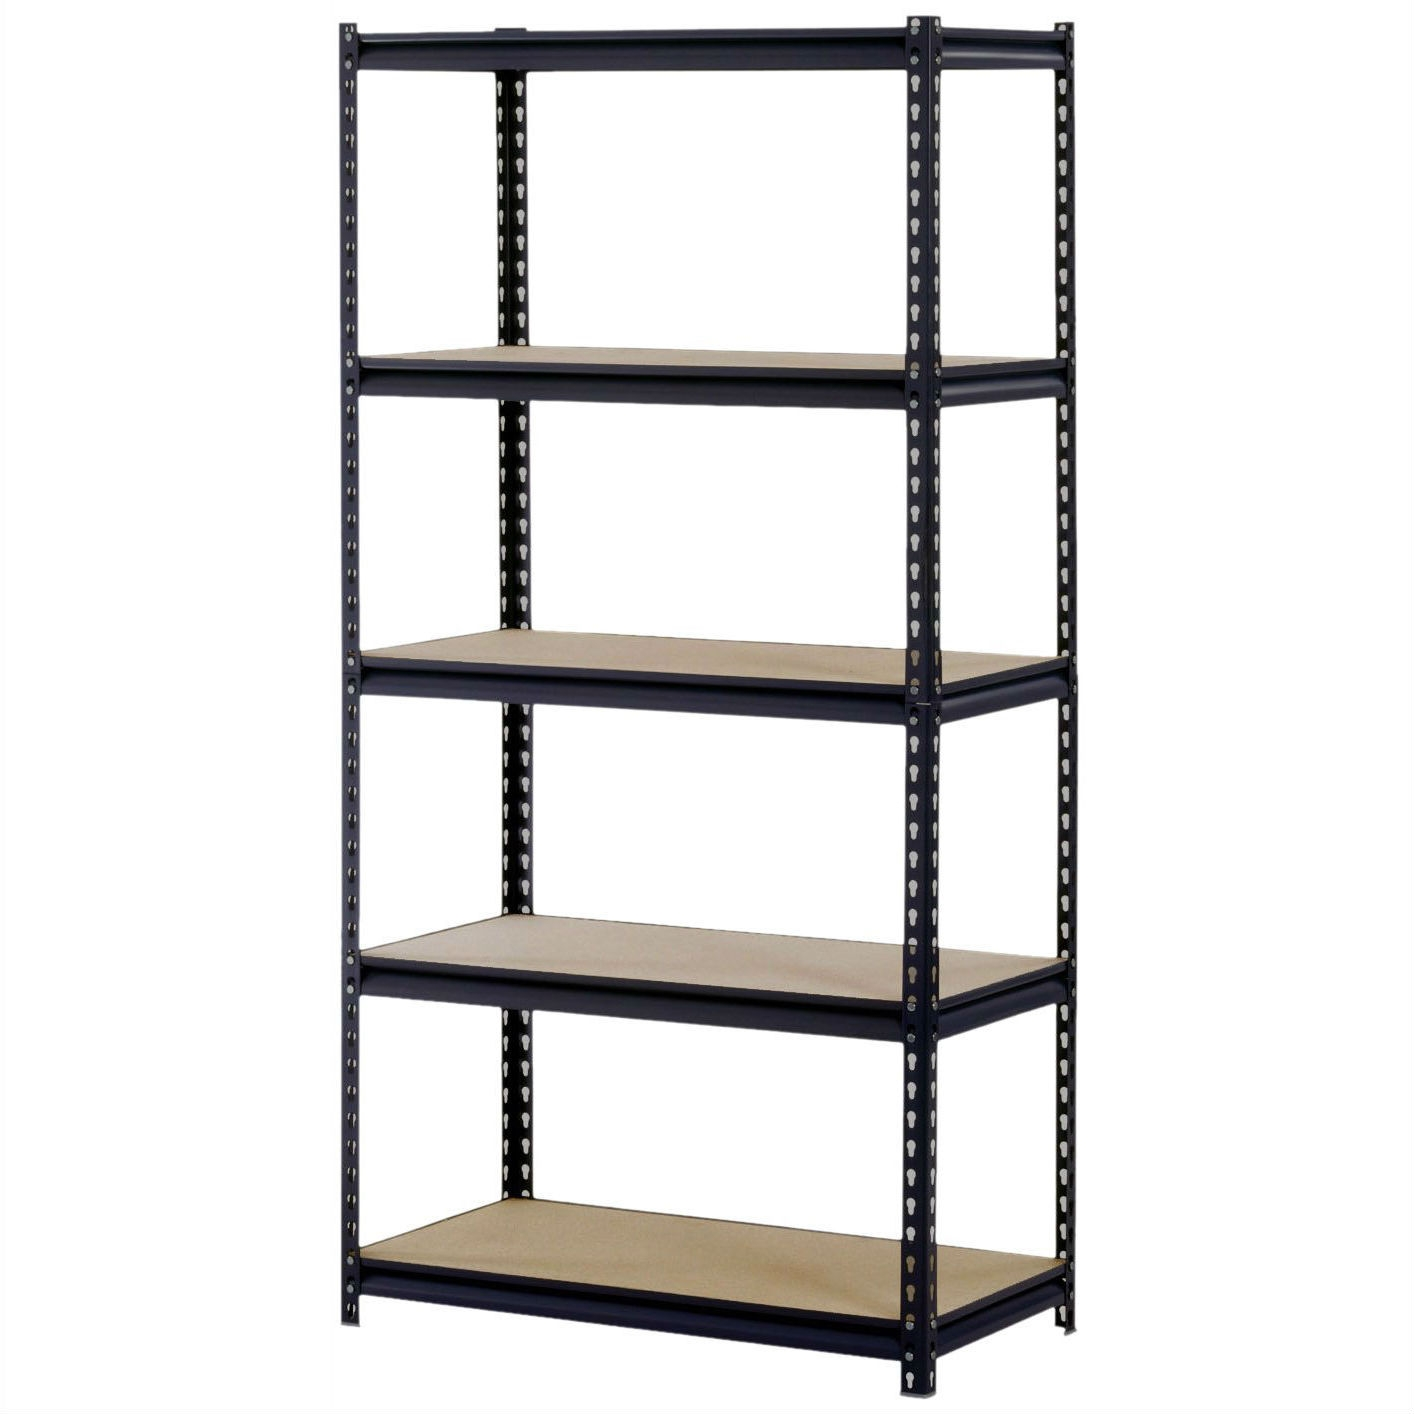 Stacking Shelves Walmart | Shelving Units at Walmart | Walmart Shelving